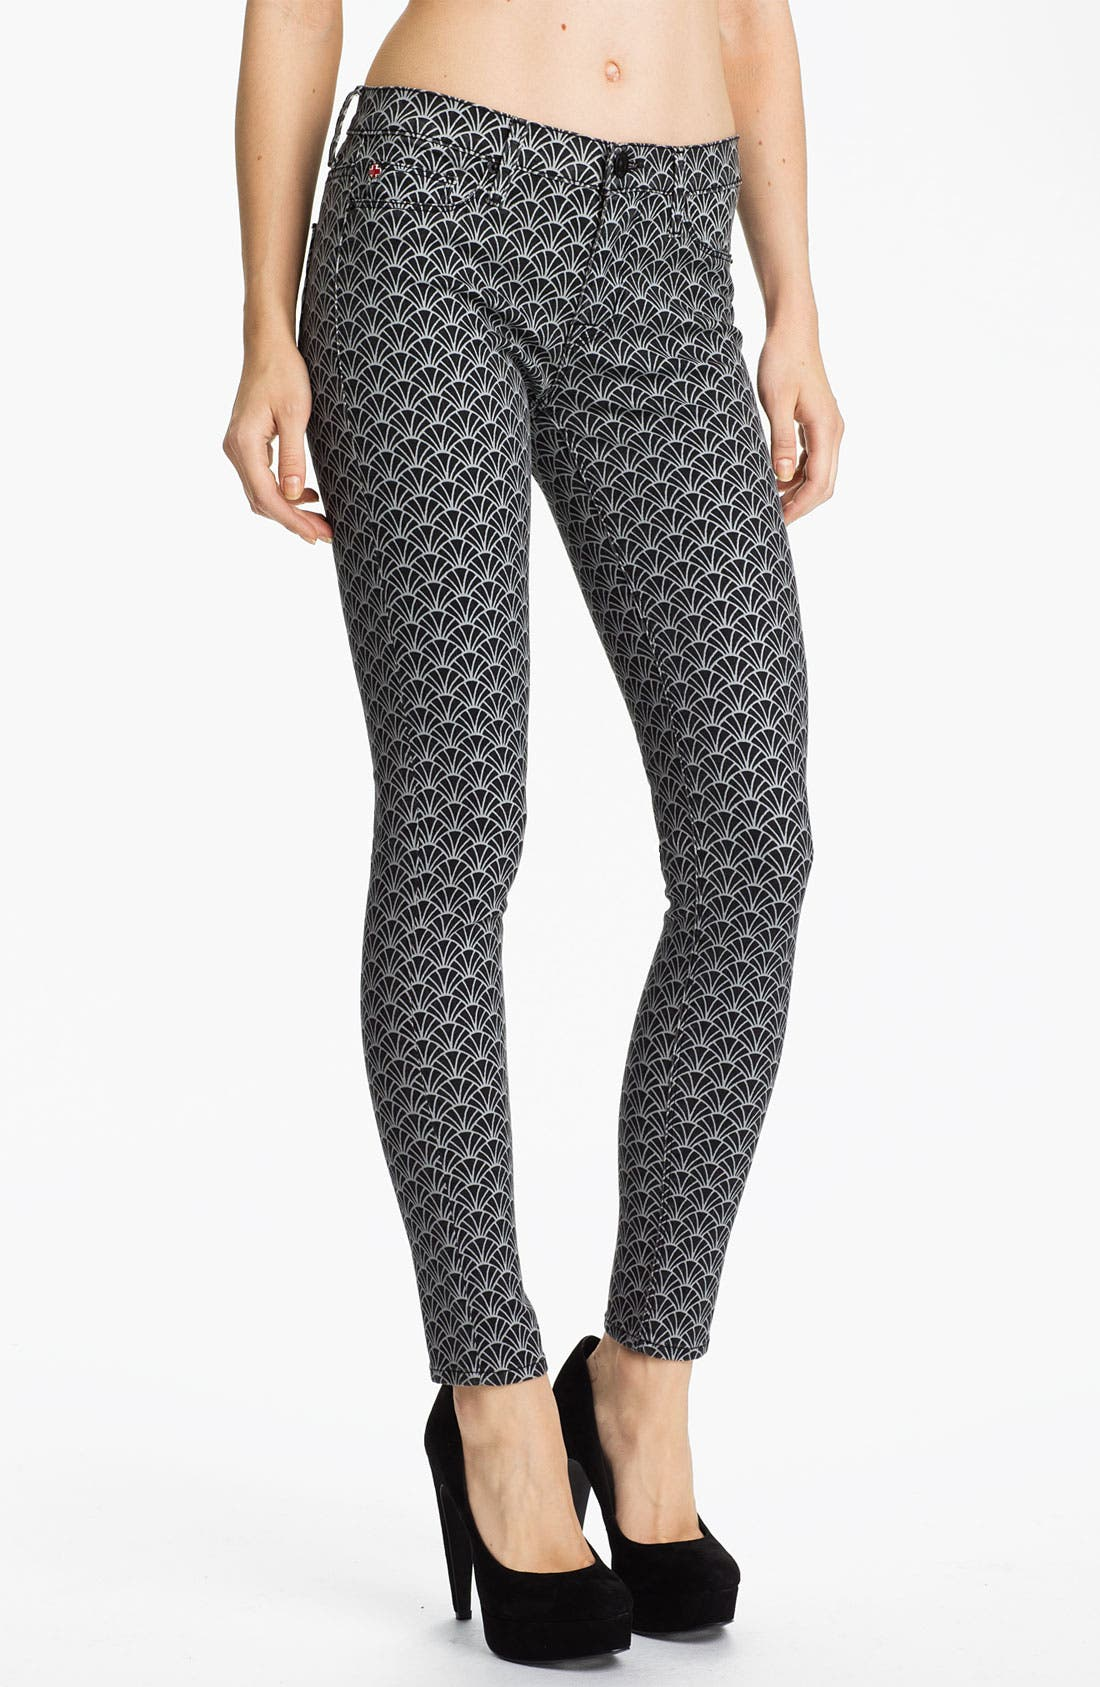 Main Image - Hudson Jeans 'Nico' Mid Rise Skinny Stretch Jeans (Diamond Art Deco)